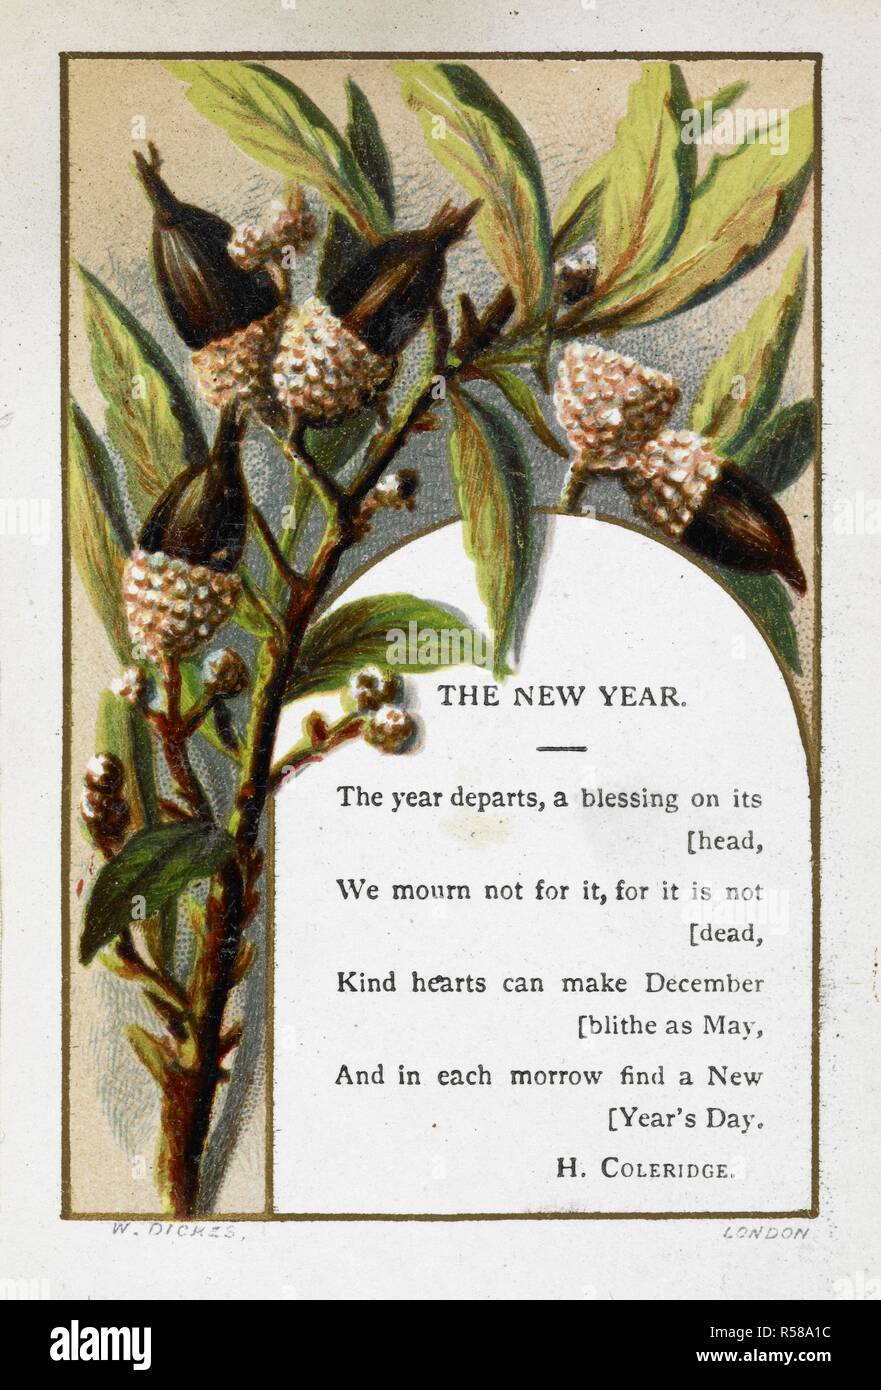 new year greetings card with acorn decoration and poem by h coleridge gift